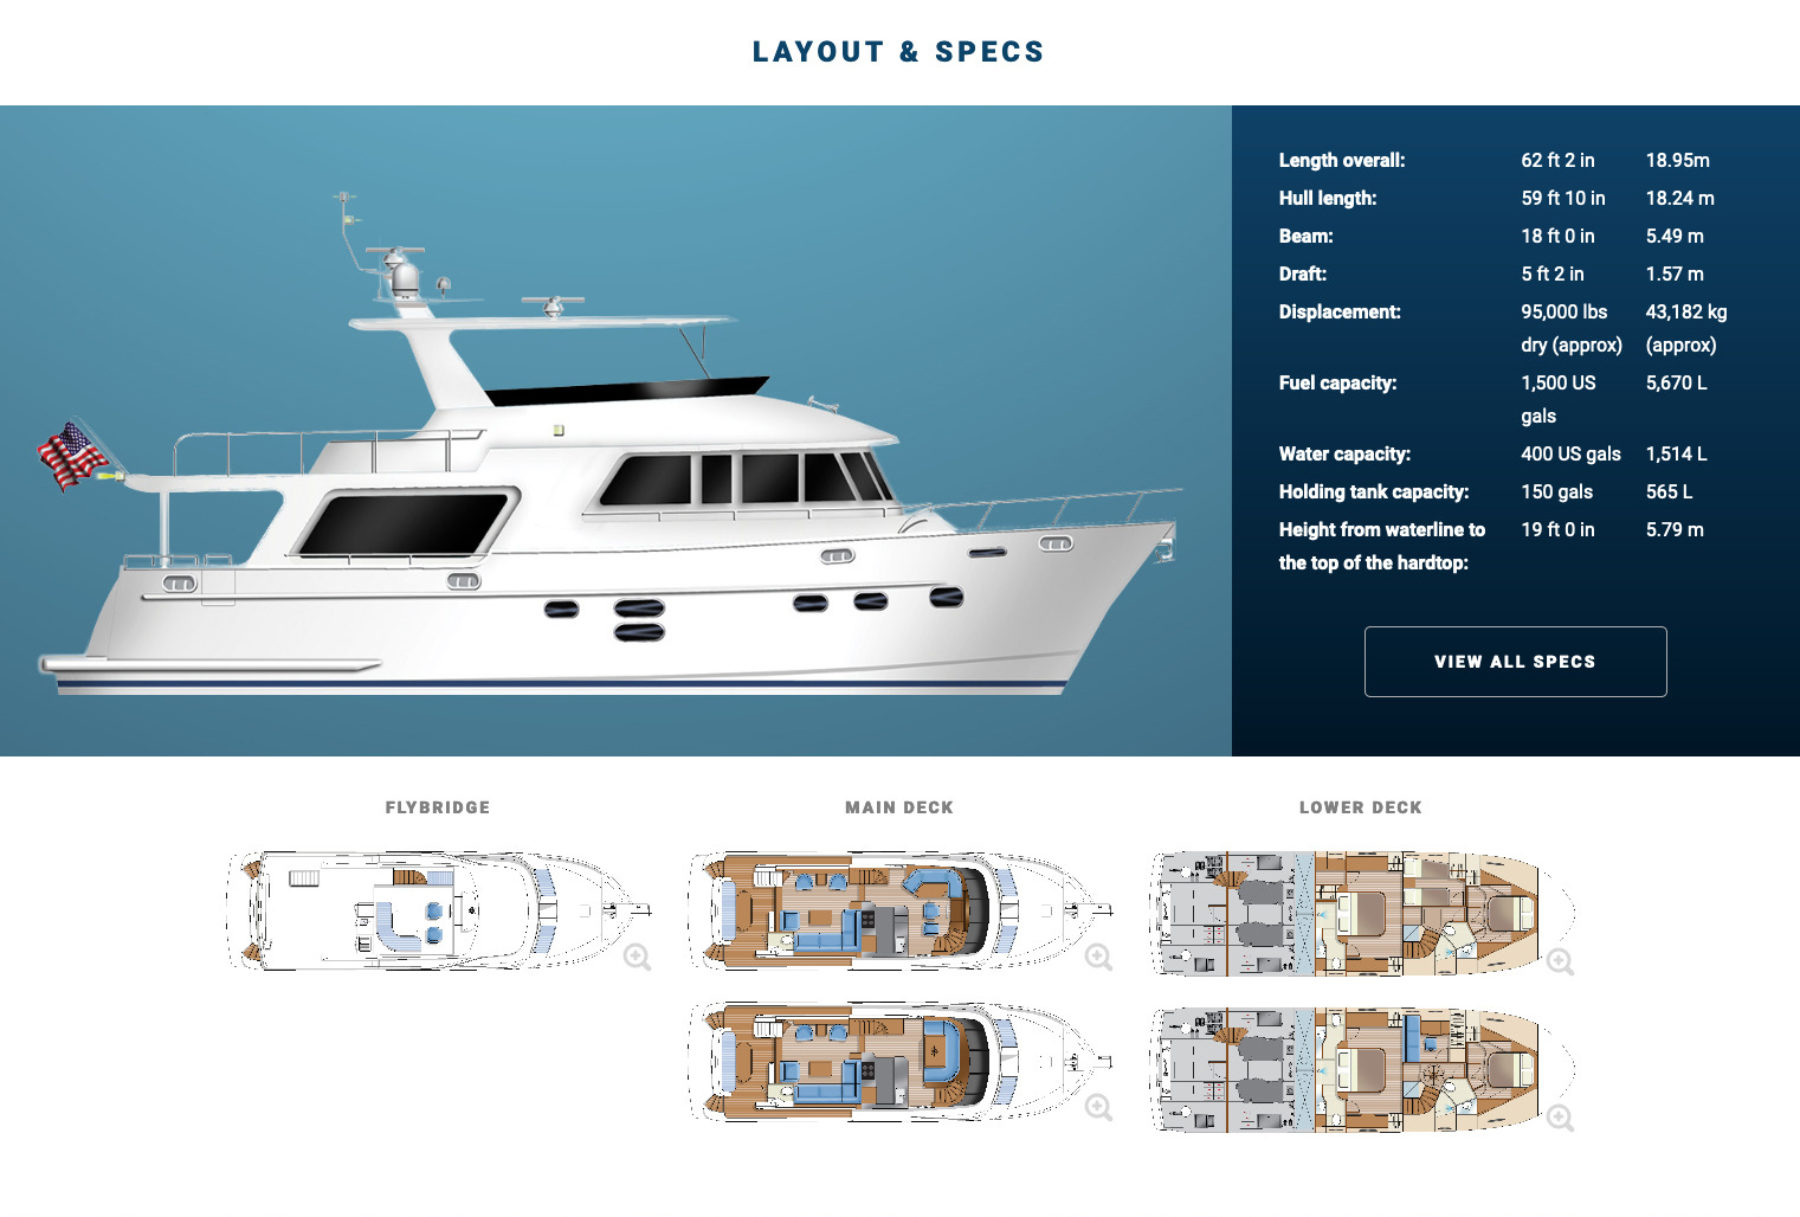 Yacht specs and floorplans